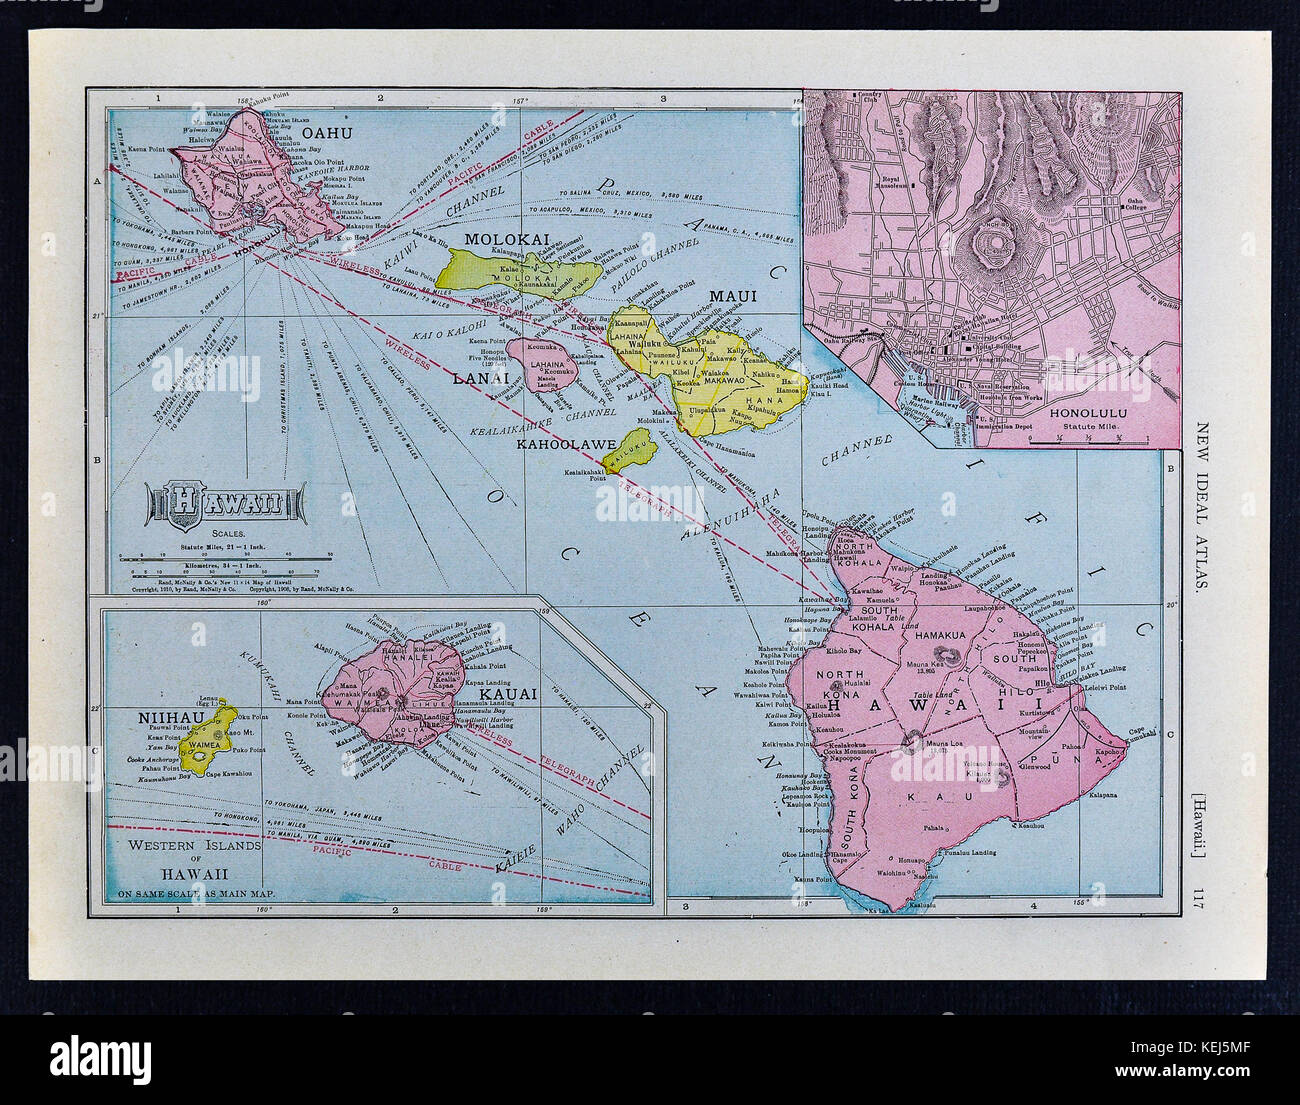 Hawaii Map Maui.1911 Mcnally Map Hawaii Islands Oahu Honolulu Maui Stock Photo